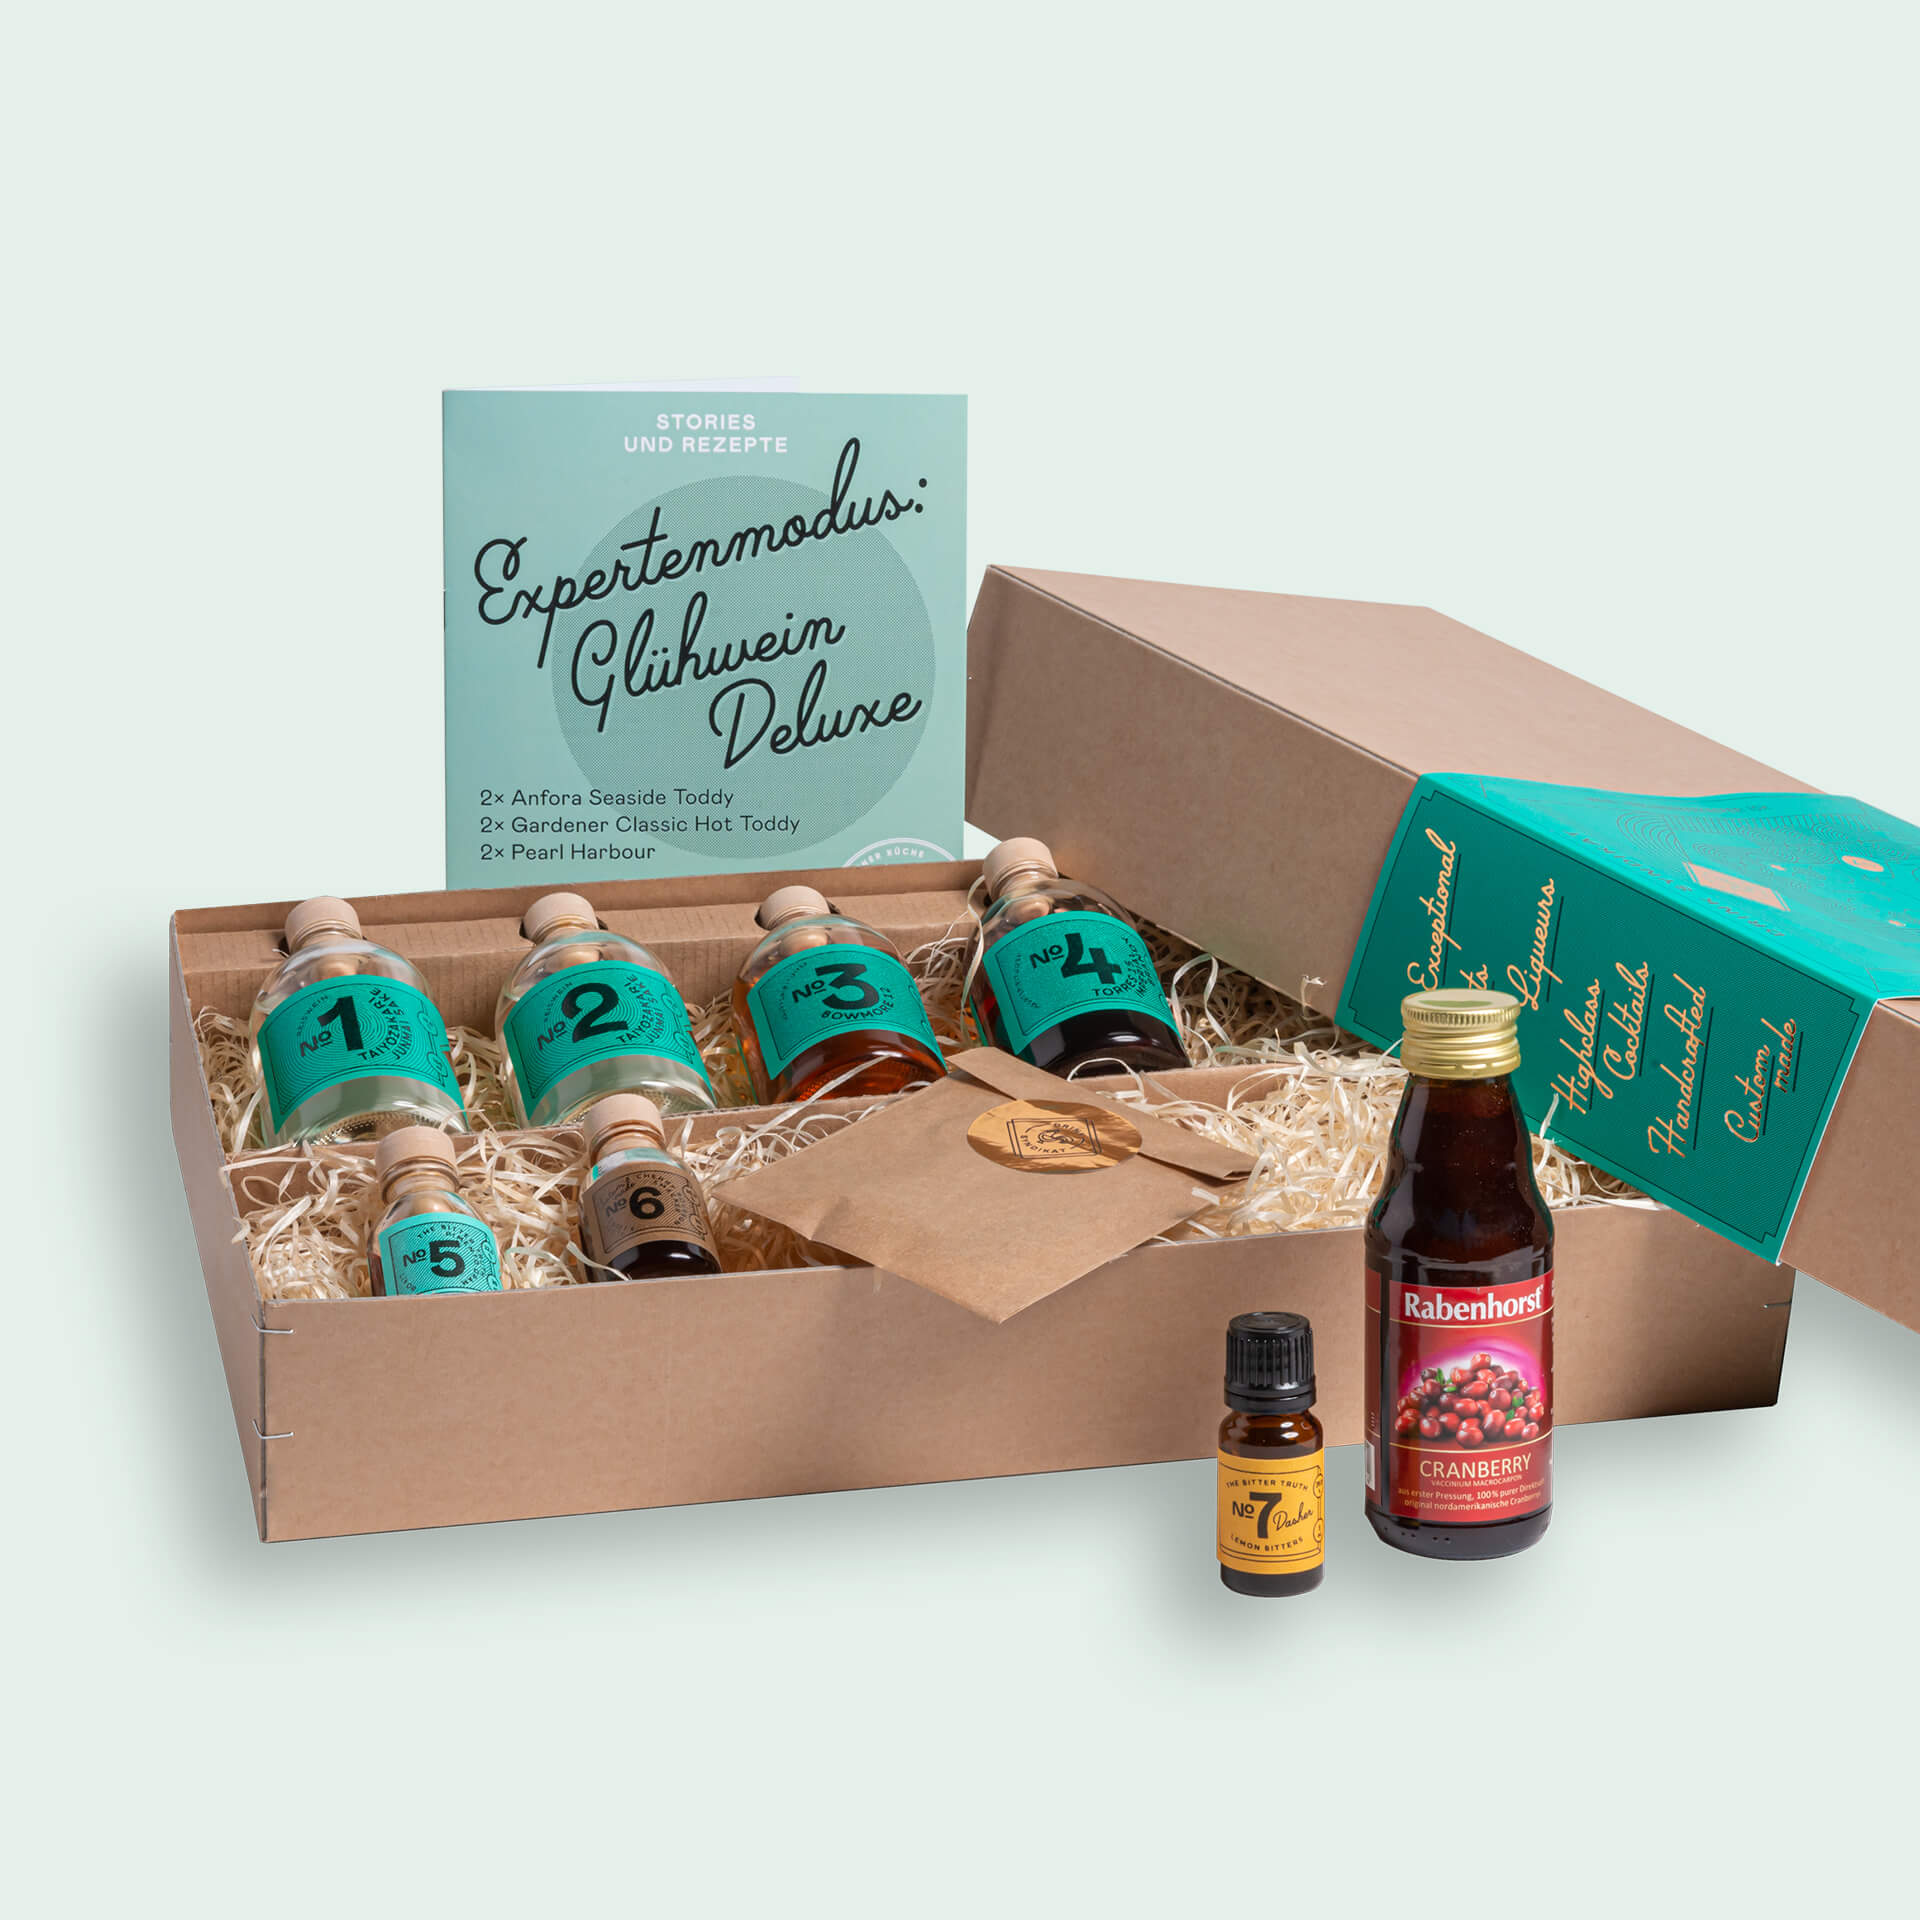 Hot Toddy Cocktail Set: Expertenmodus Glühwein Deluxe Drink Syndikat